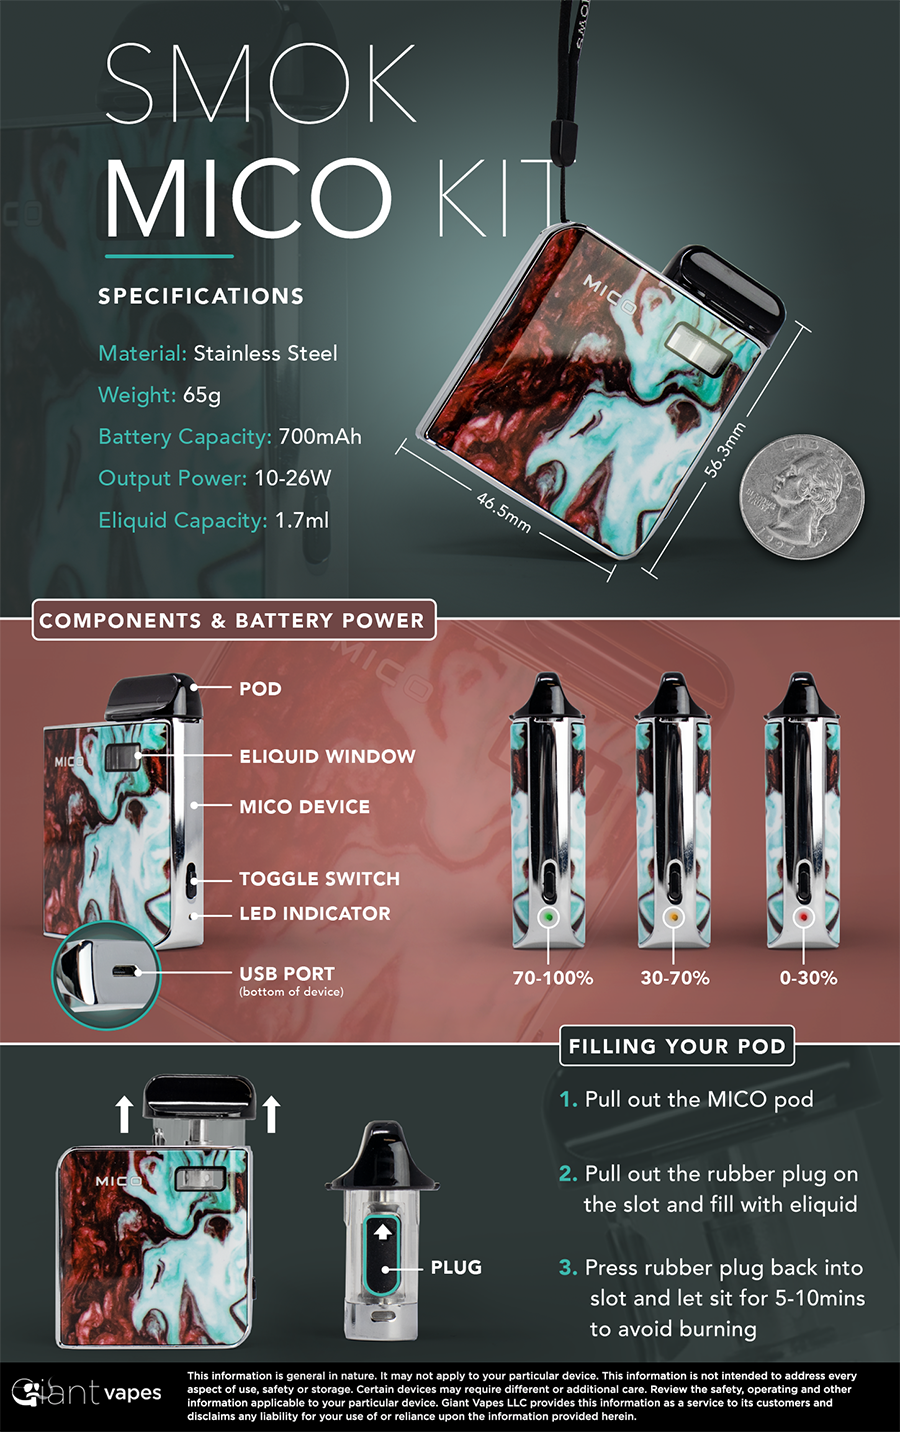 SMOK MICO Kit Infographic